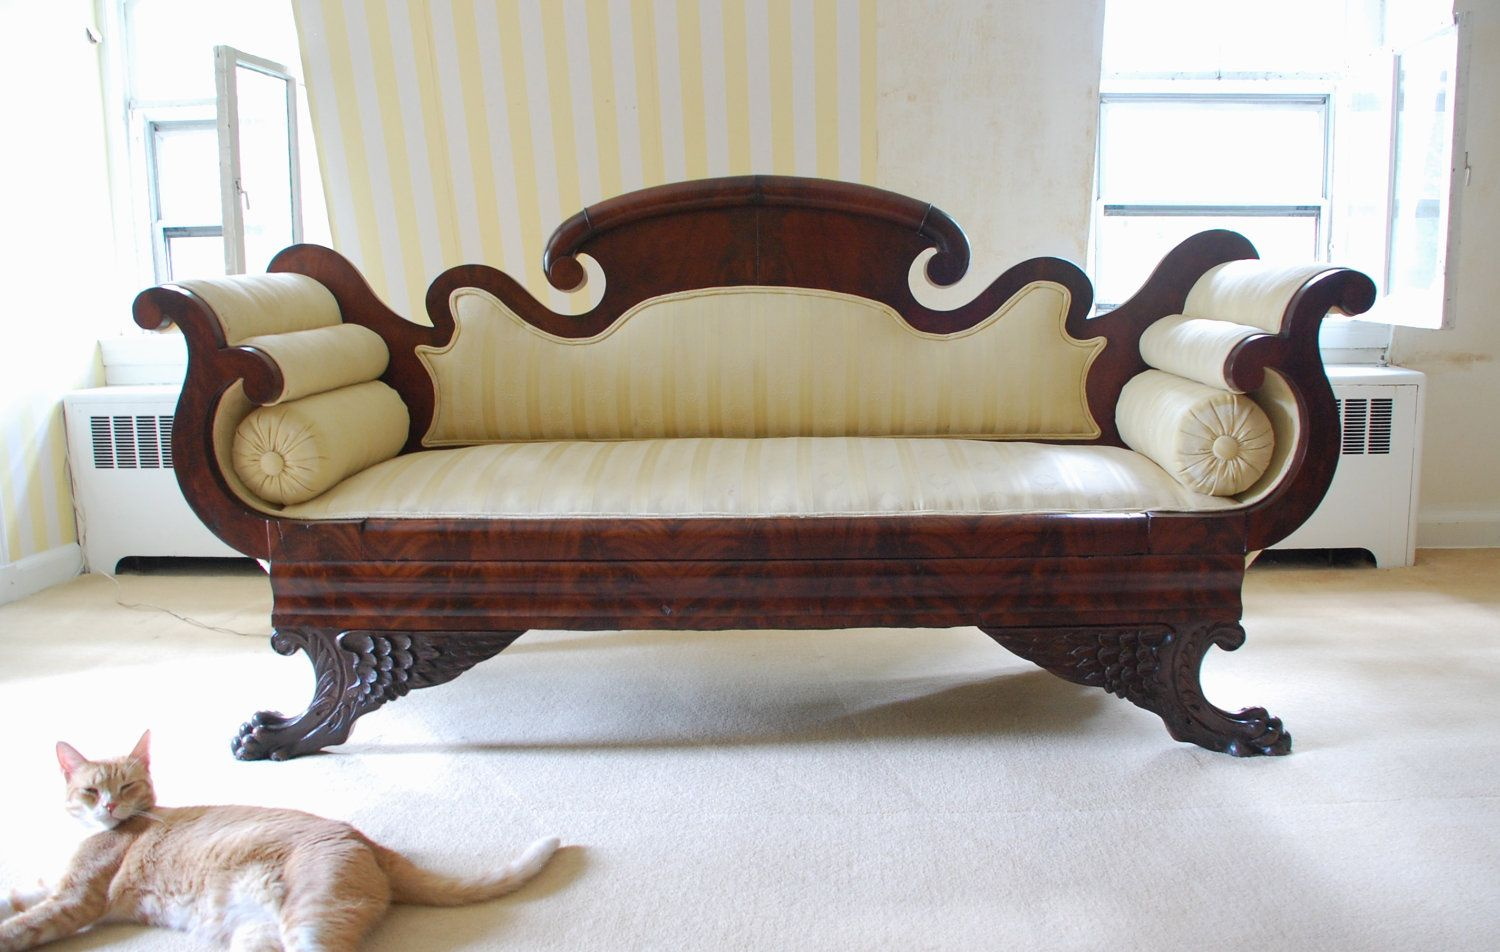 Empire Furniture Sofa Cowhide Leather Sectional 950 Victorian Double Scroll End Mahogany With Yellow Upholstery